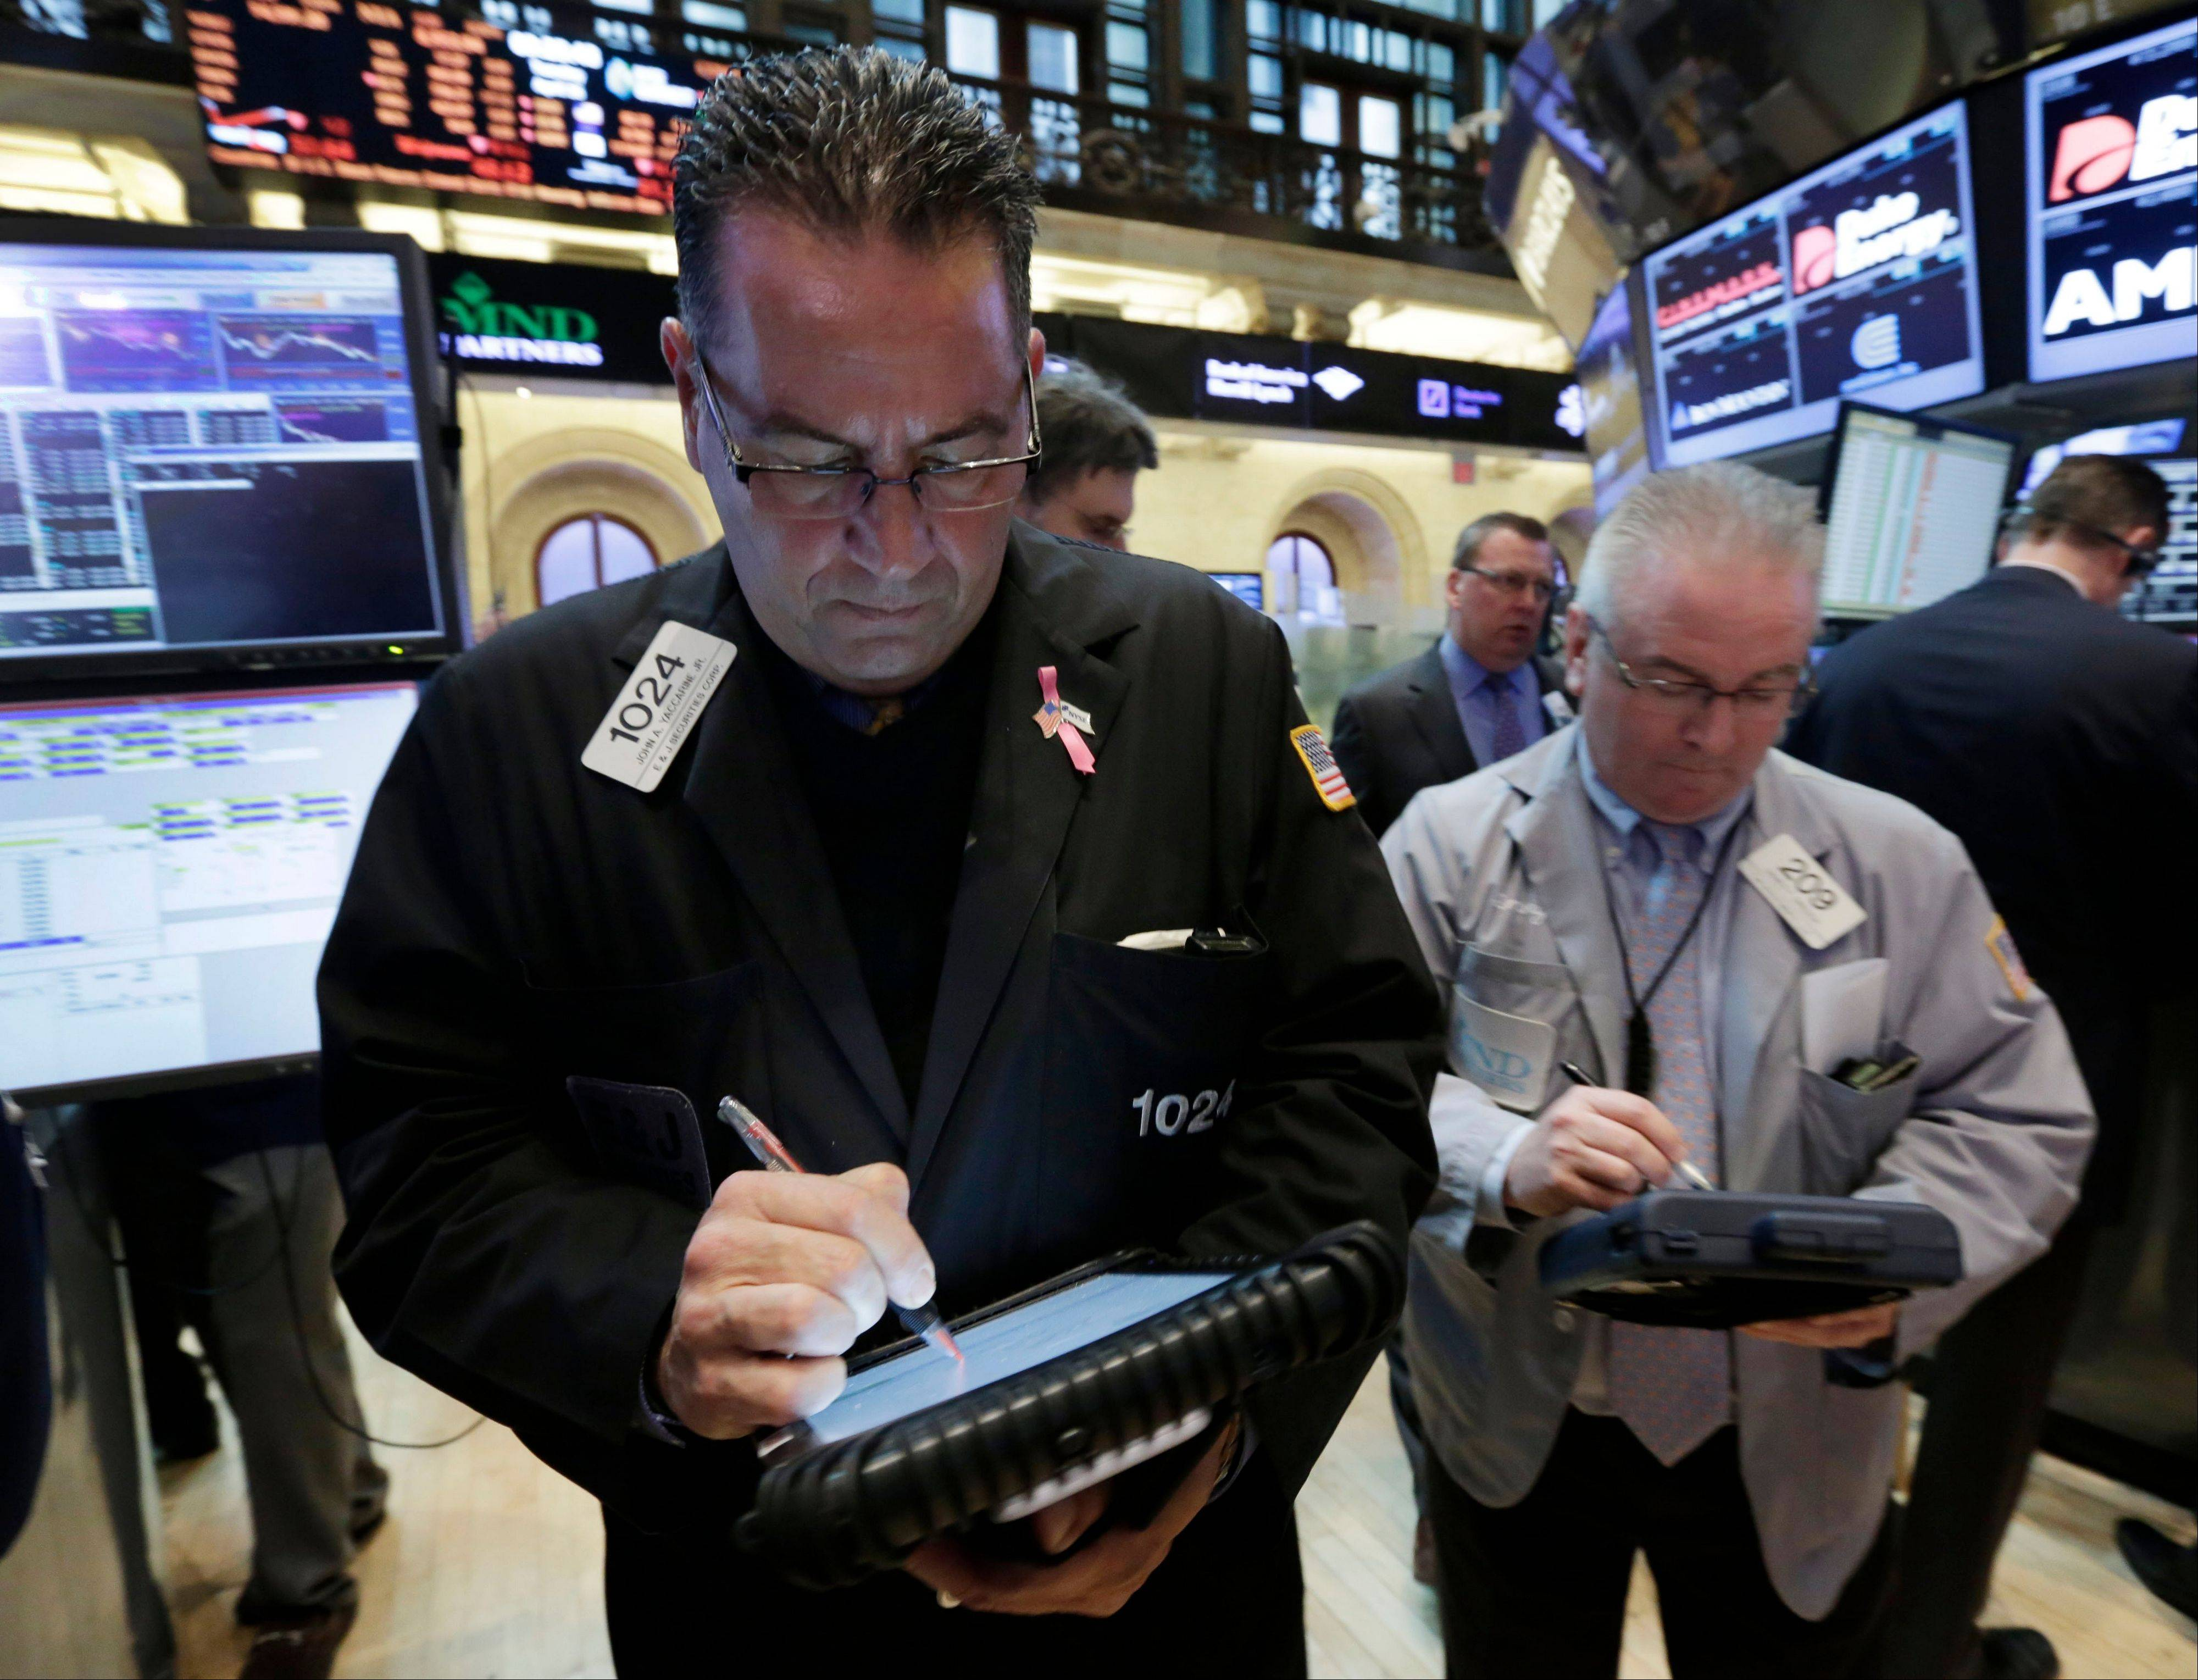 U.S. stocks rose, after the Dow Jones Industrial Average climbed above 15,000 for the first time yesterday, as earnings forecasts from Whole Foods Market Inc. and Electronic Arts Inc. beat analyst estimates.